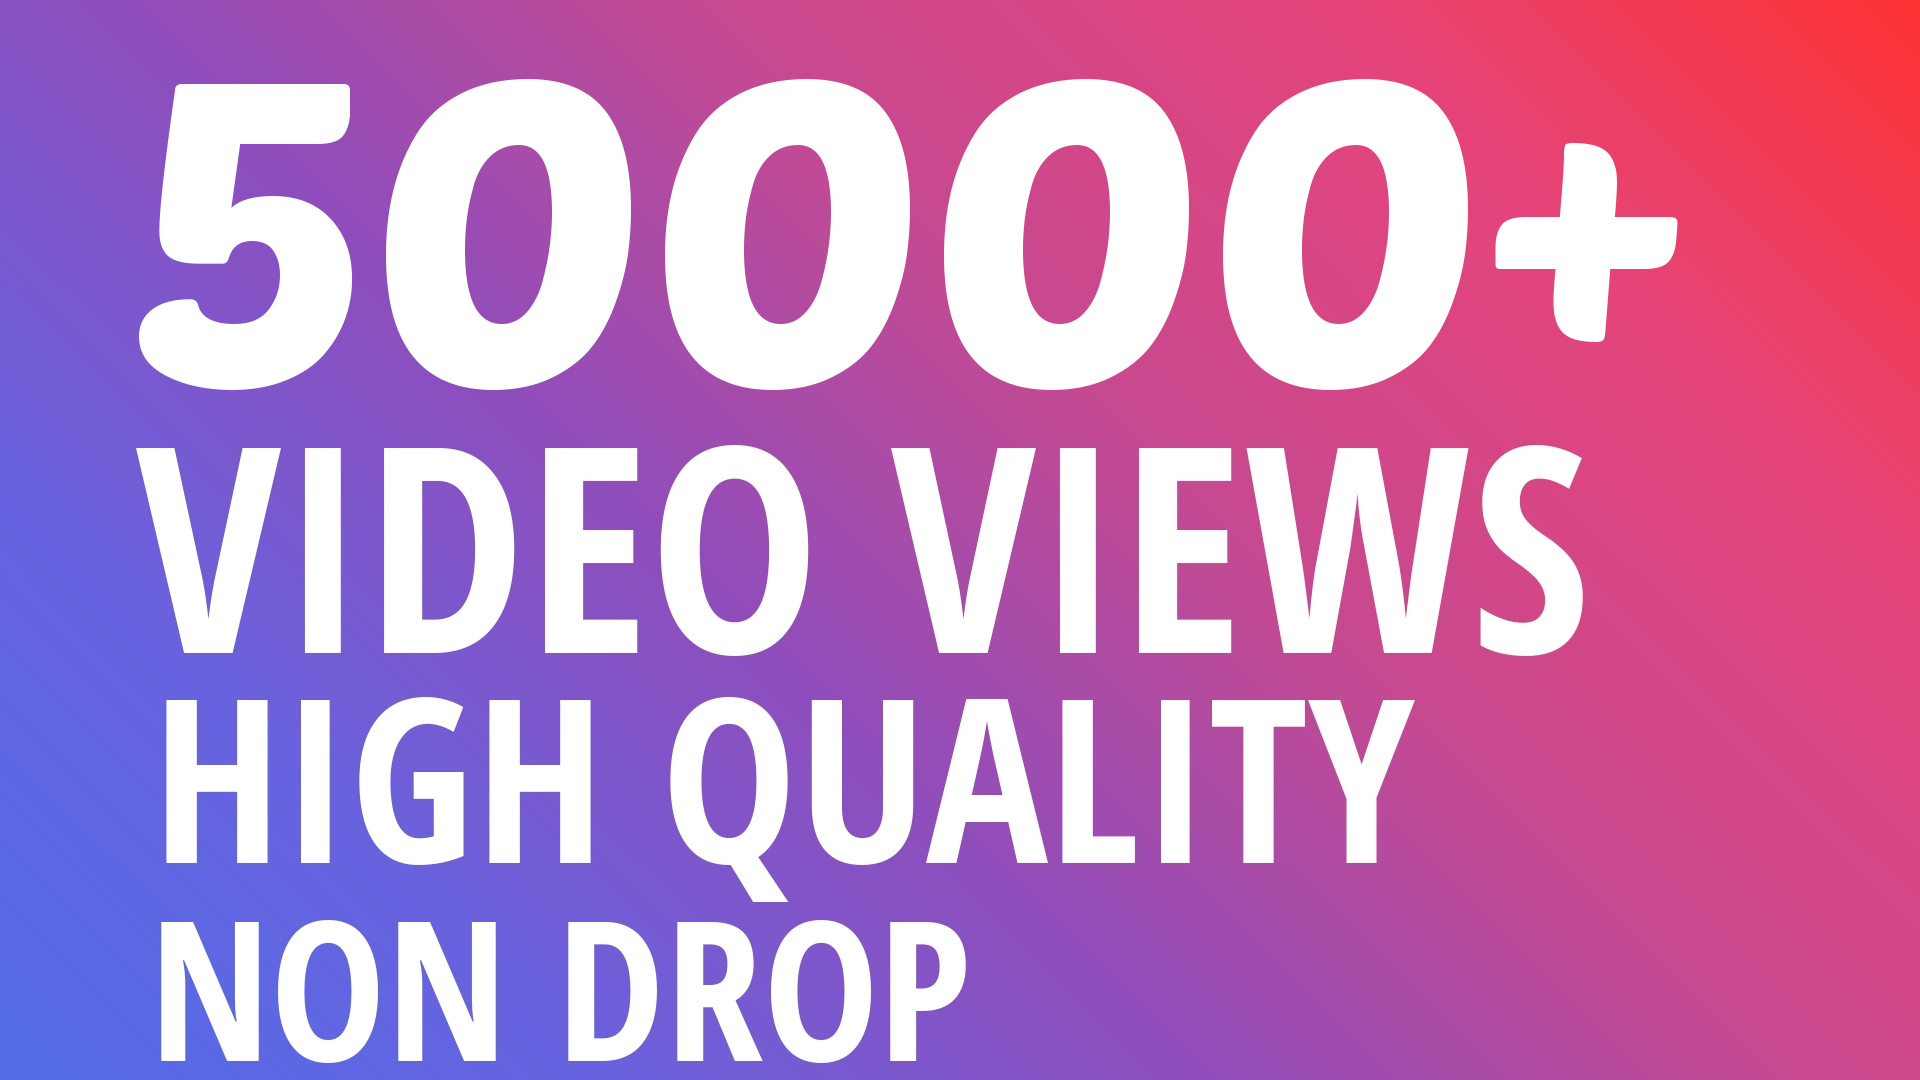 Add Fast 50000+ High Quality Social Video Views Fast and Stable Lifetime